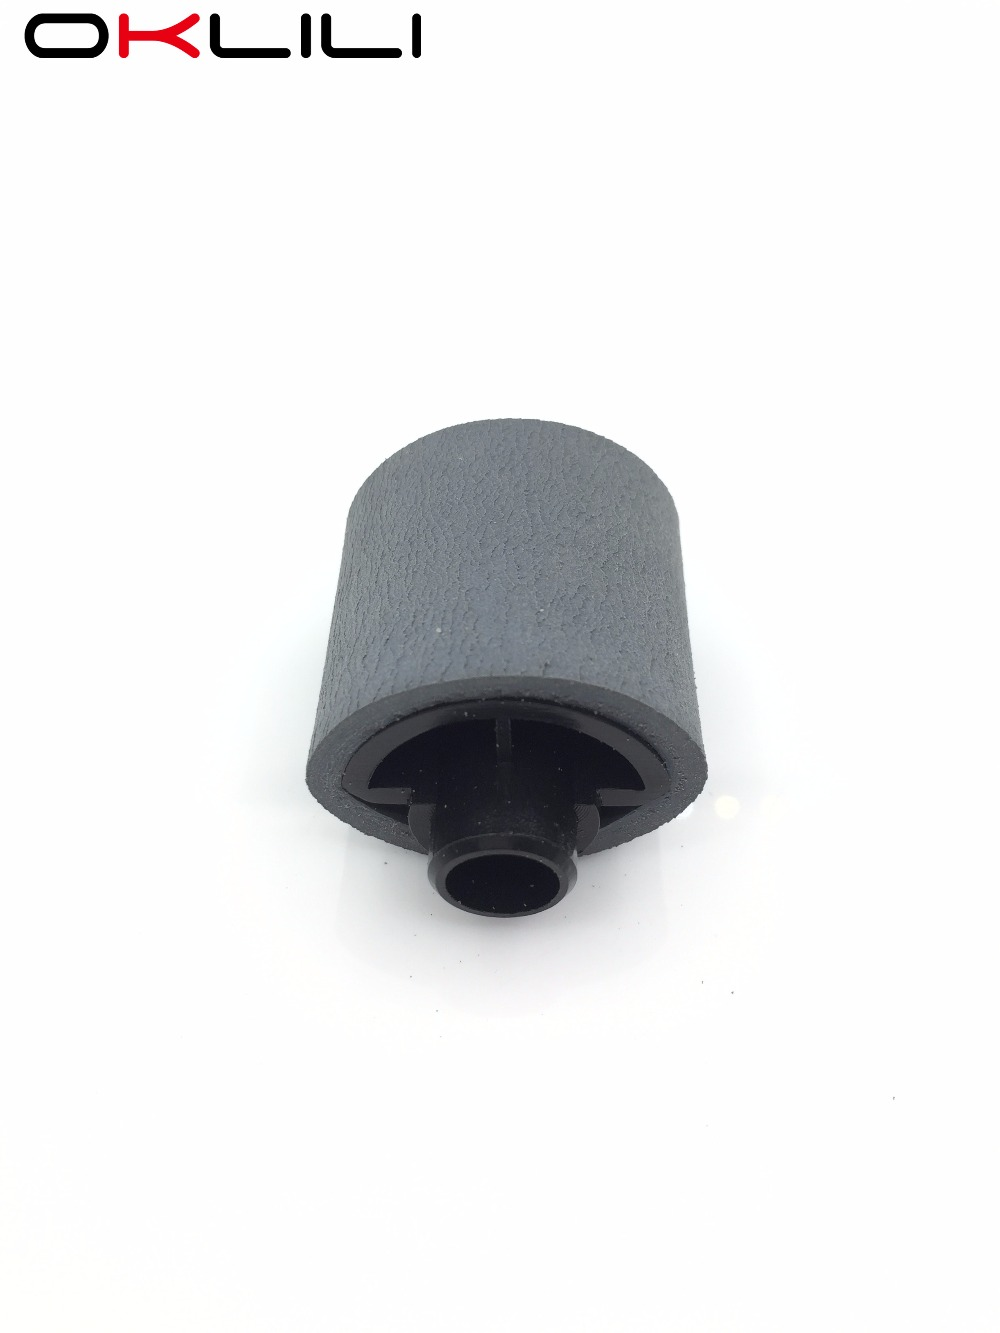 10PCX JC72-01231A Pickup Roller for Samsung ML1510 1710 1740 1750 2250 SCX4016 4116 4100 4200 4220 4300 4500 4520 4720 SF560 565 printer power supply board for samsung ml 1510 ml 1710 ml 1740 ml 1750 ml 1510 1710 1750 power board free shipping on sale